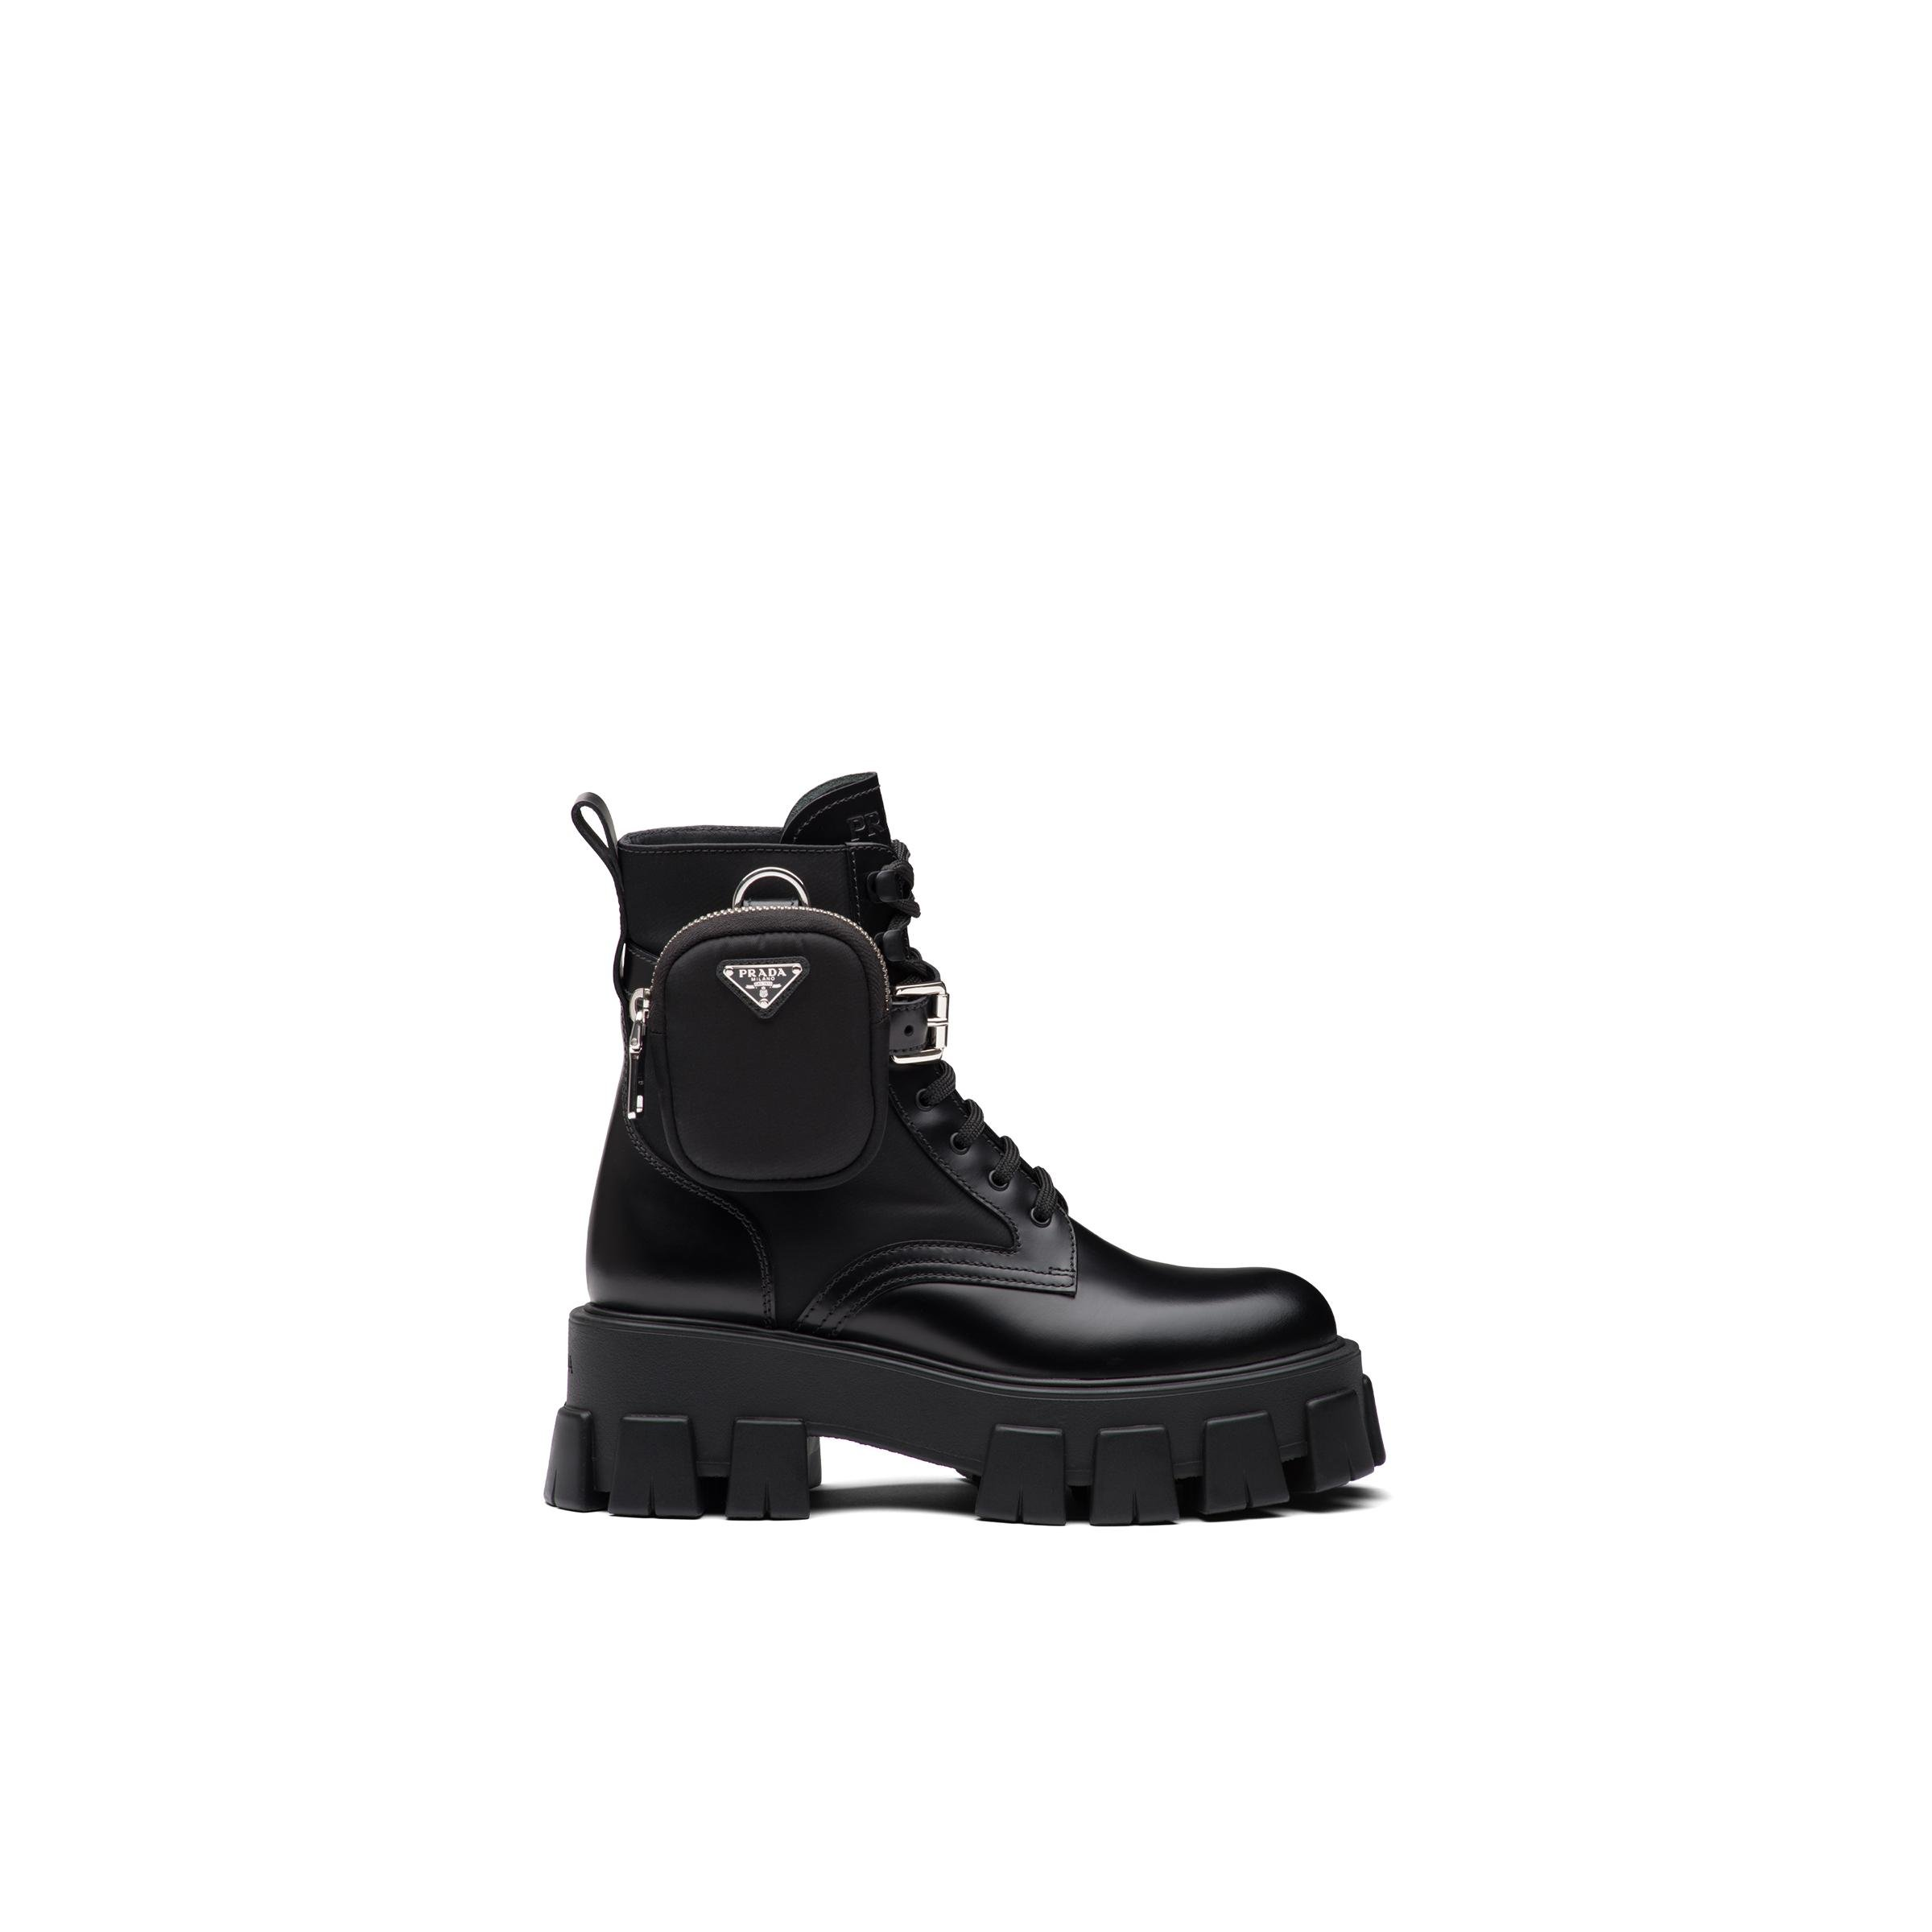 Brushed Rois Leather And Nylon Monolith Boots Women Black 2